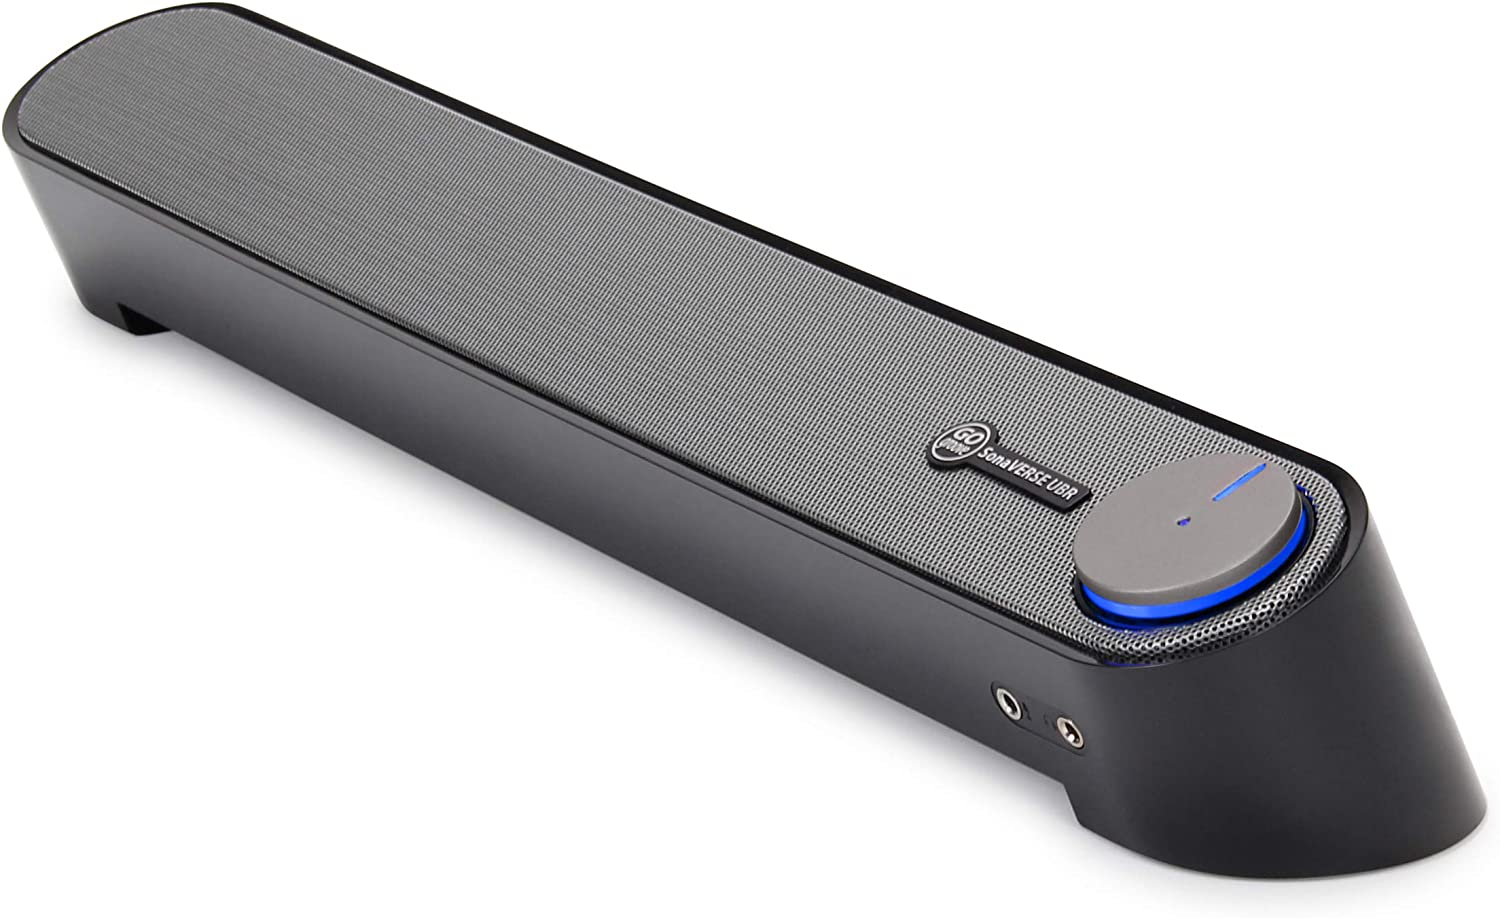 GOgroove Computer Speaker Mini Soundbar - USB Powered PC Sound Bar with Easy Setup Wired AUX, Stereo Audio, Microphone Port, Volume Control Knob, Under Monitor Design for Desktop (Black)